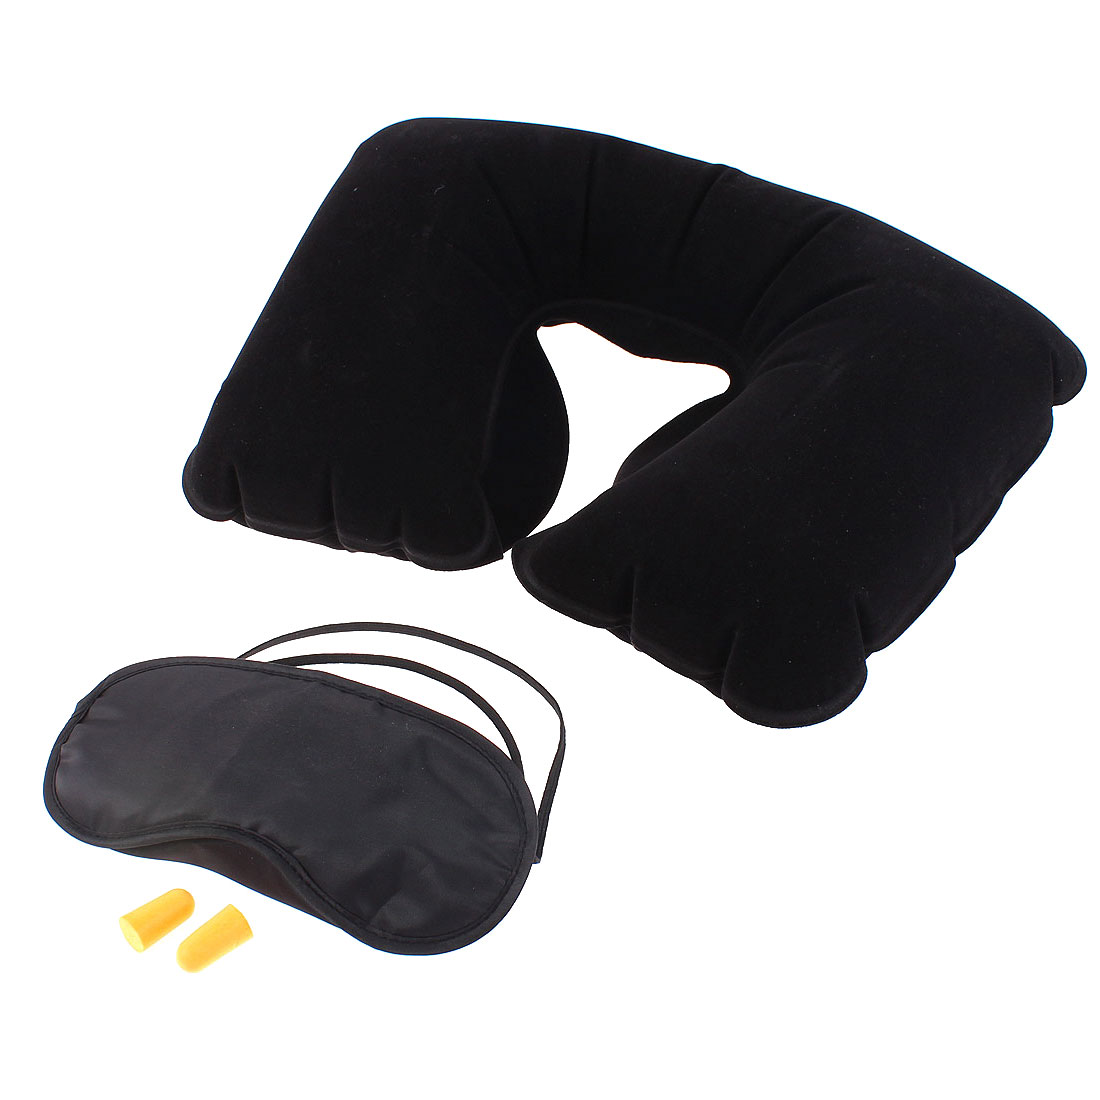 Travel Sleeping Inflatable Neck Rest Fleece Pillow Eye Mask Earplug Black 3 in 1